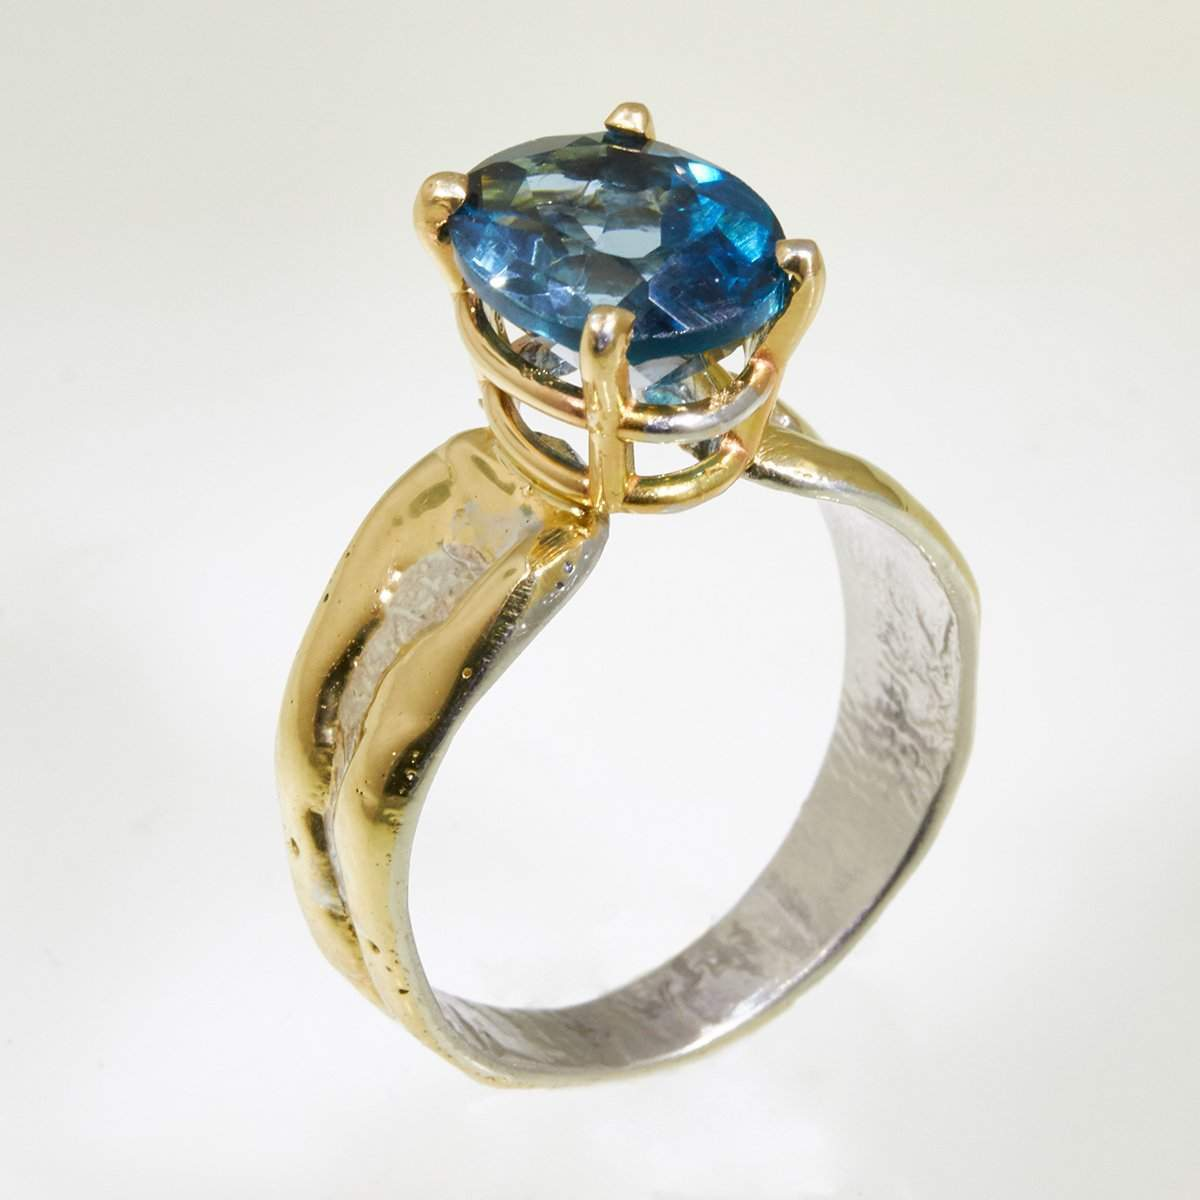 14K Gold & Crystalline Silver London Blue Topaz Ring - 32862-Fusion Designs-Renee Taylor Gallery